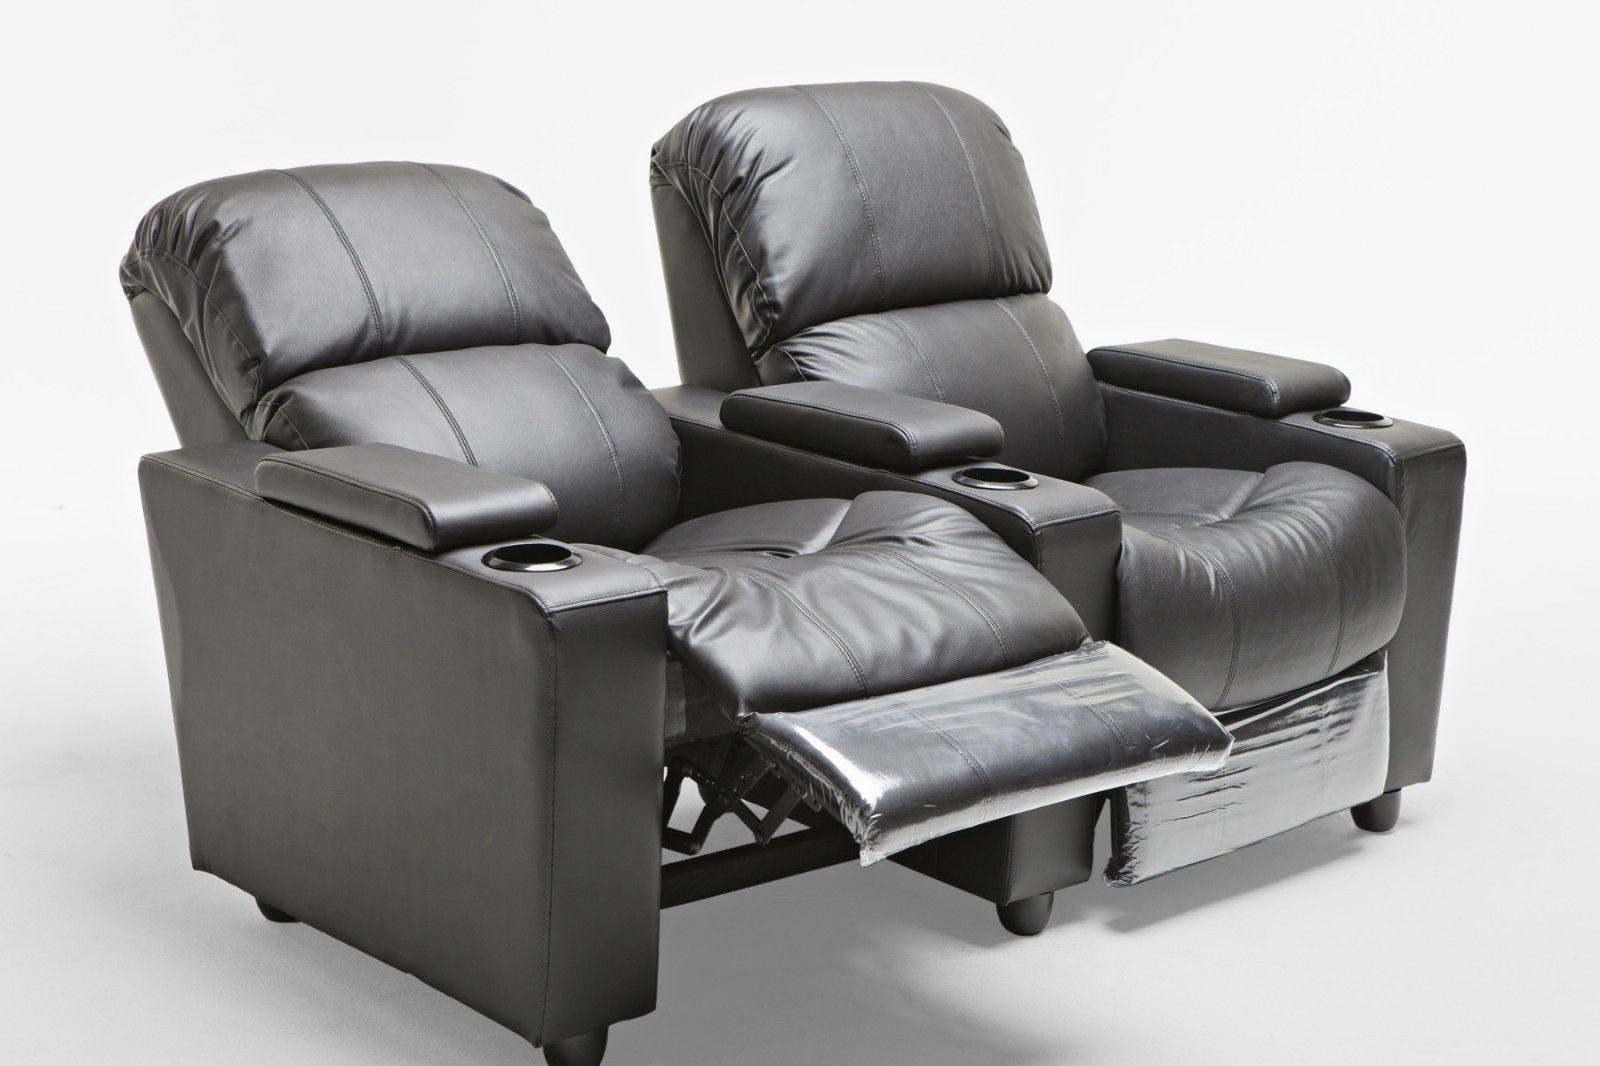 Sophie Leather 2 Seater Home Theatre Recliner Sofa Lounge  : 23 092img4 from www.ebay.com.au size 1600 x 1066 jpeg 148kB